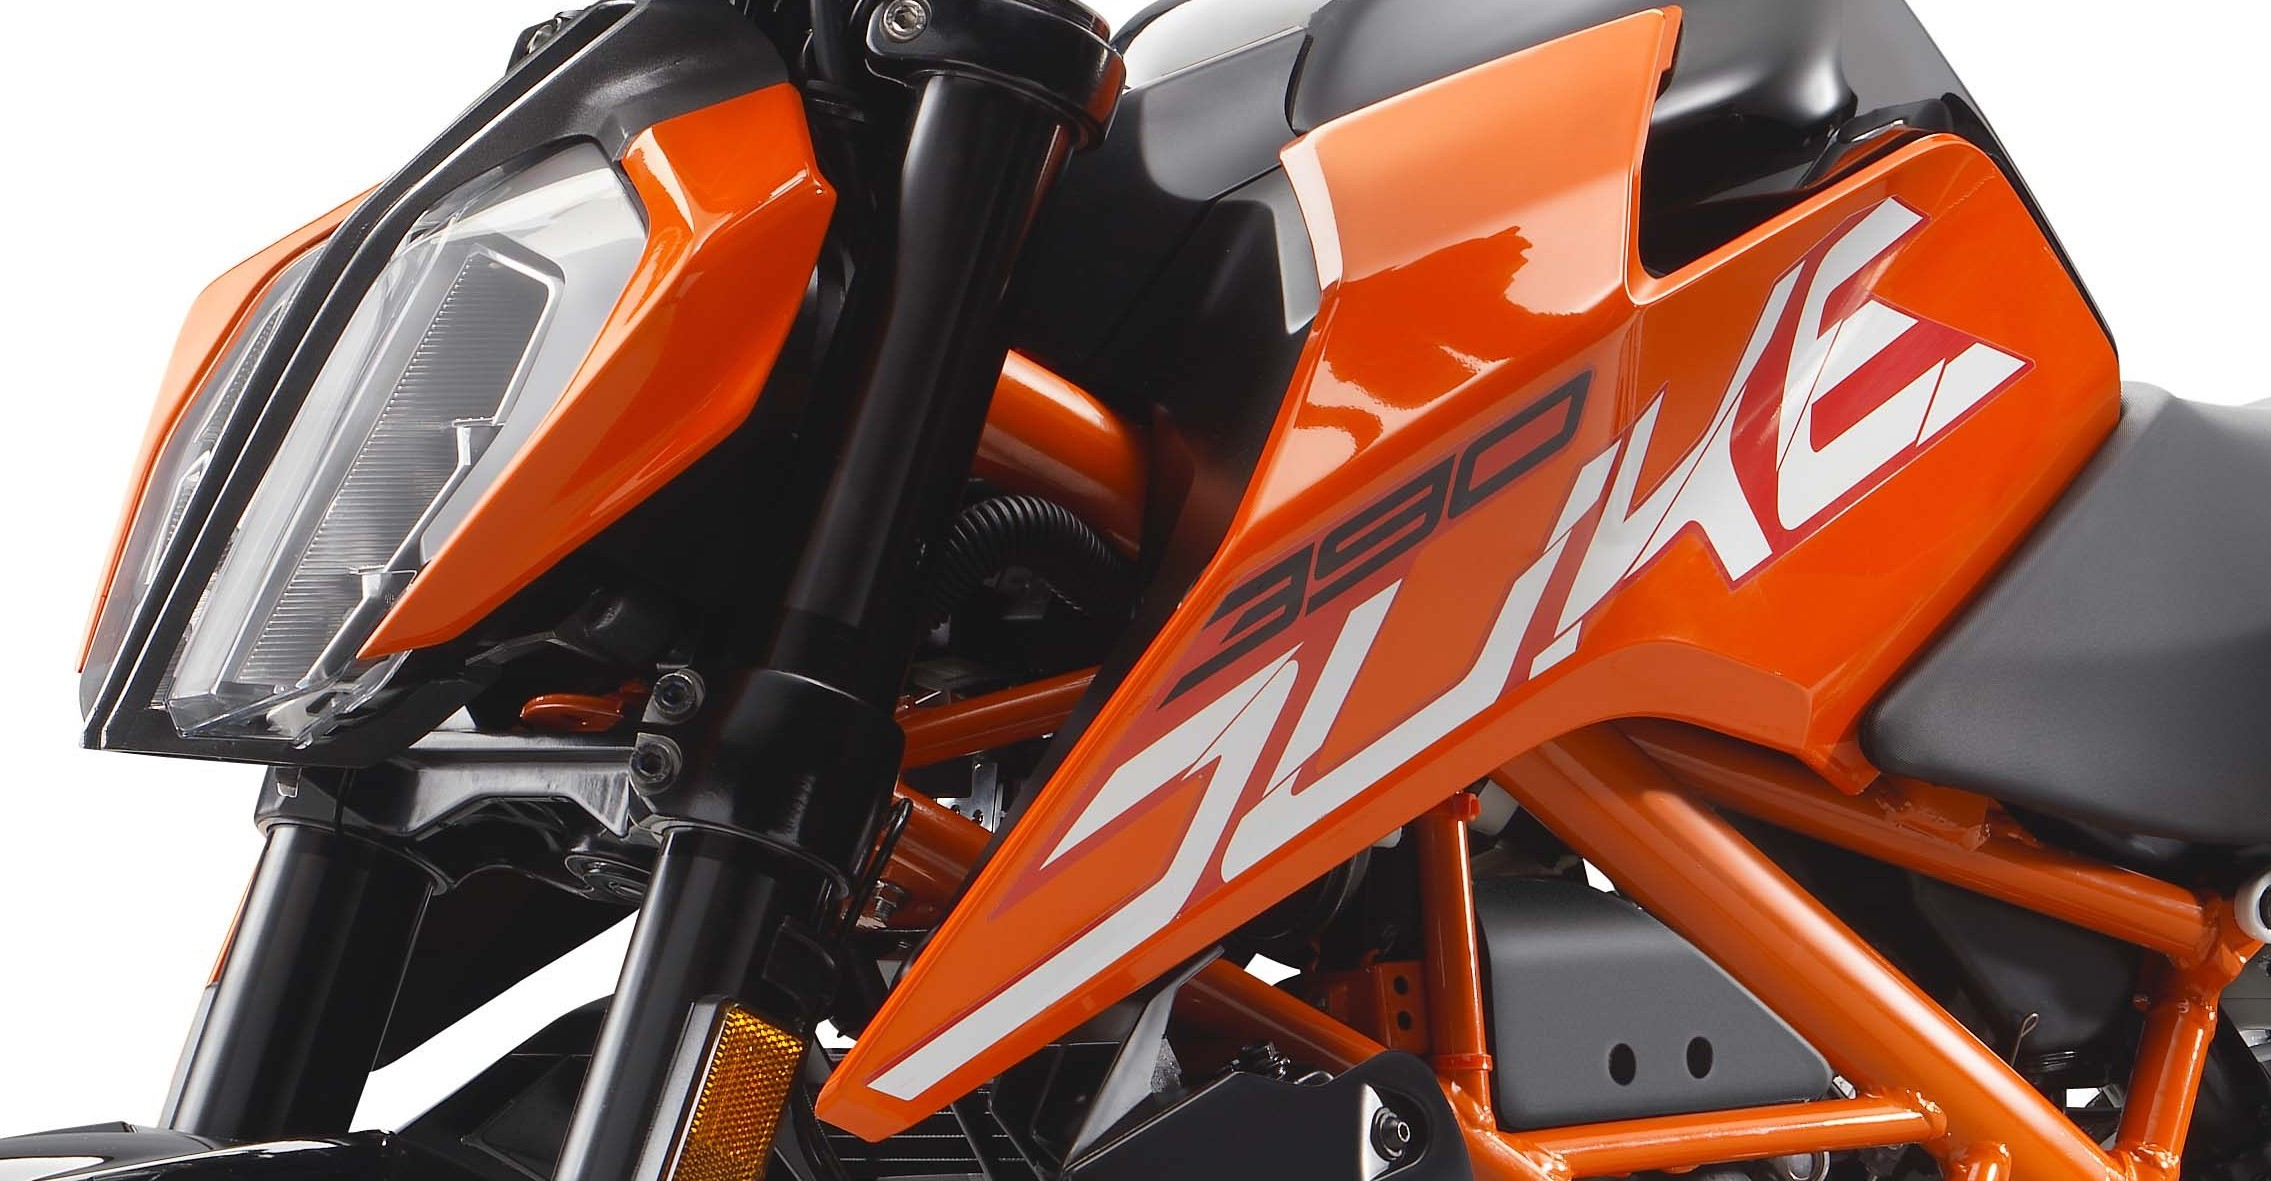 2017 KTM Duke 390 to launch in India in January 2017 2271x1181